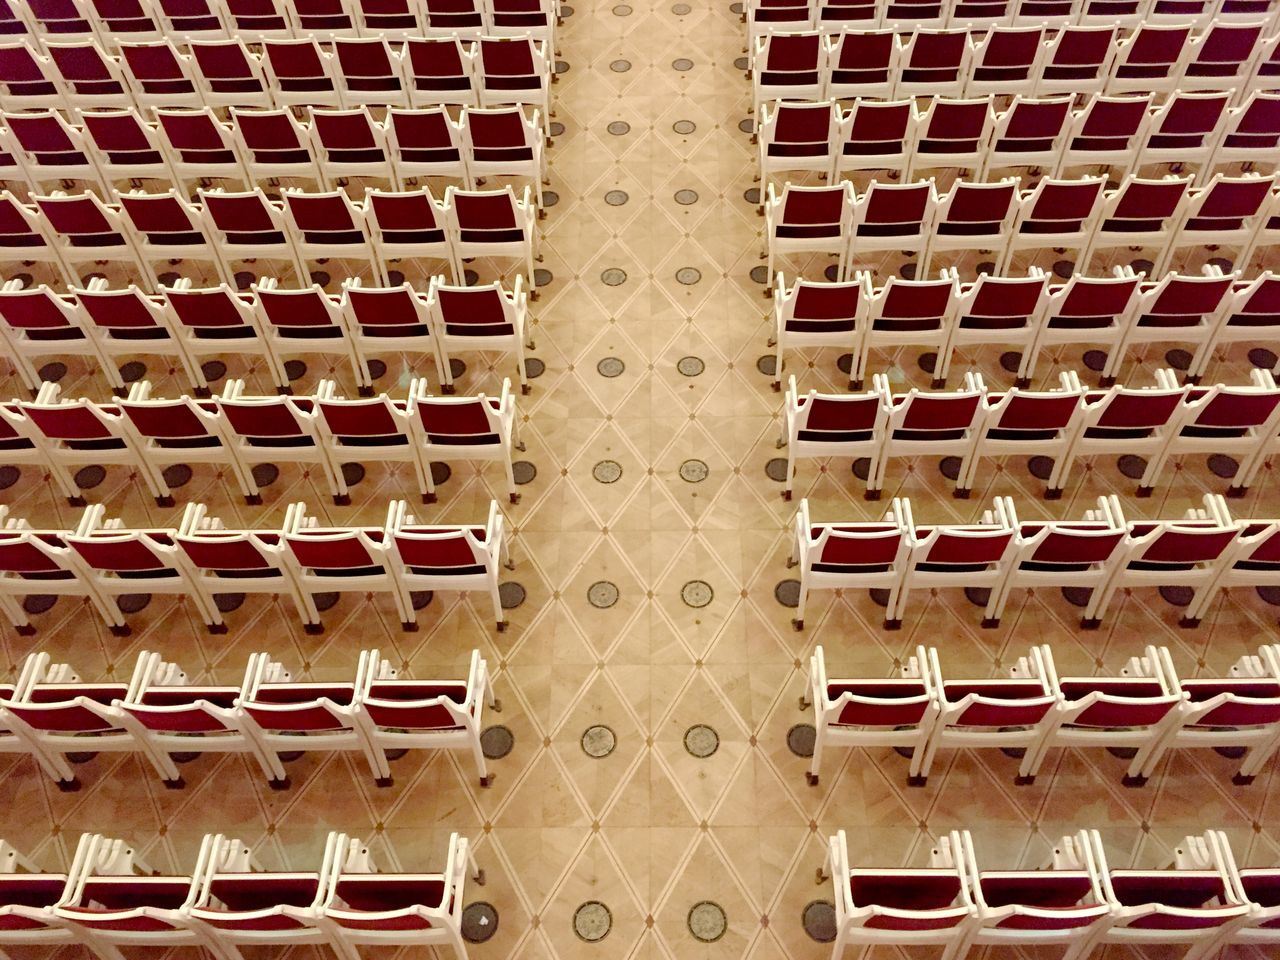 Absence Abundance Architecture Backgrounds Building Exterior Built Structure Chairs Close-up Concert Hall  Directly Above Full Frame In A Row In Order In Row Large Group Of Objects No People Outdoors Pattern Red Chair Seating Sitting Symmetry Theatre